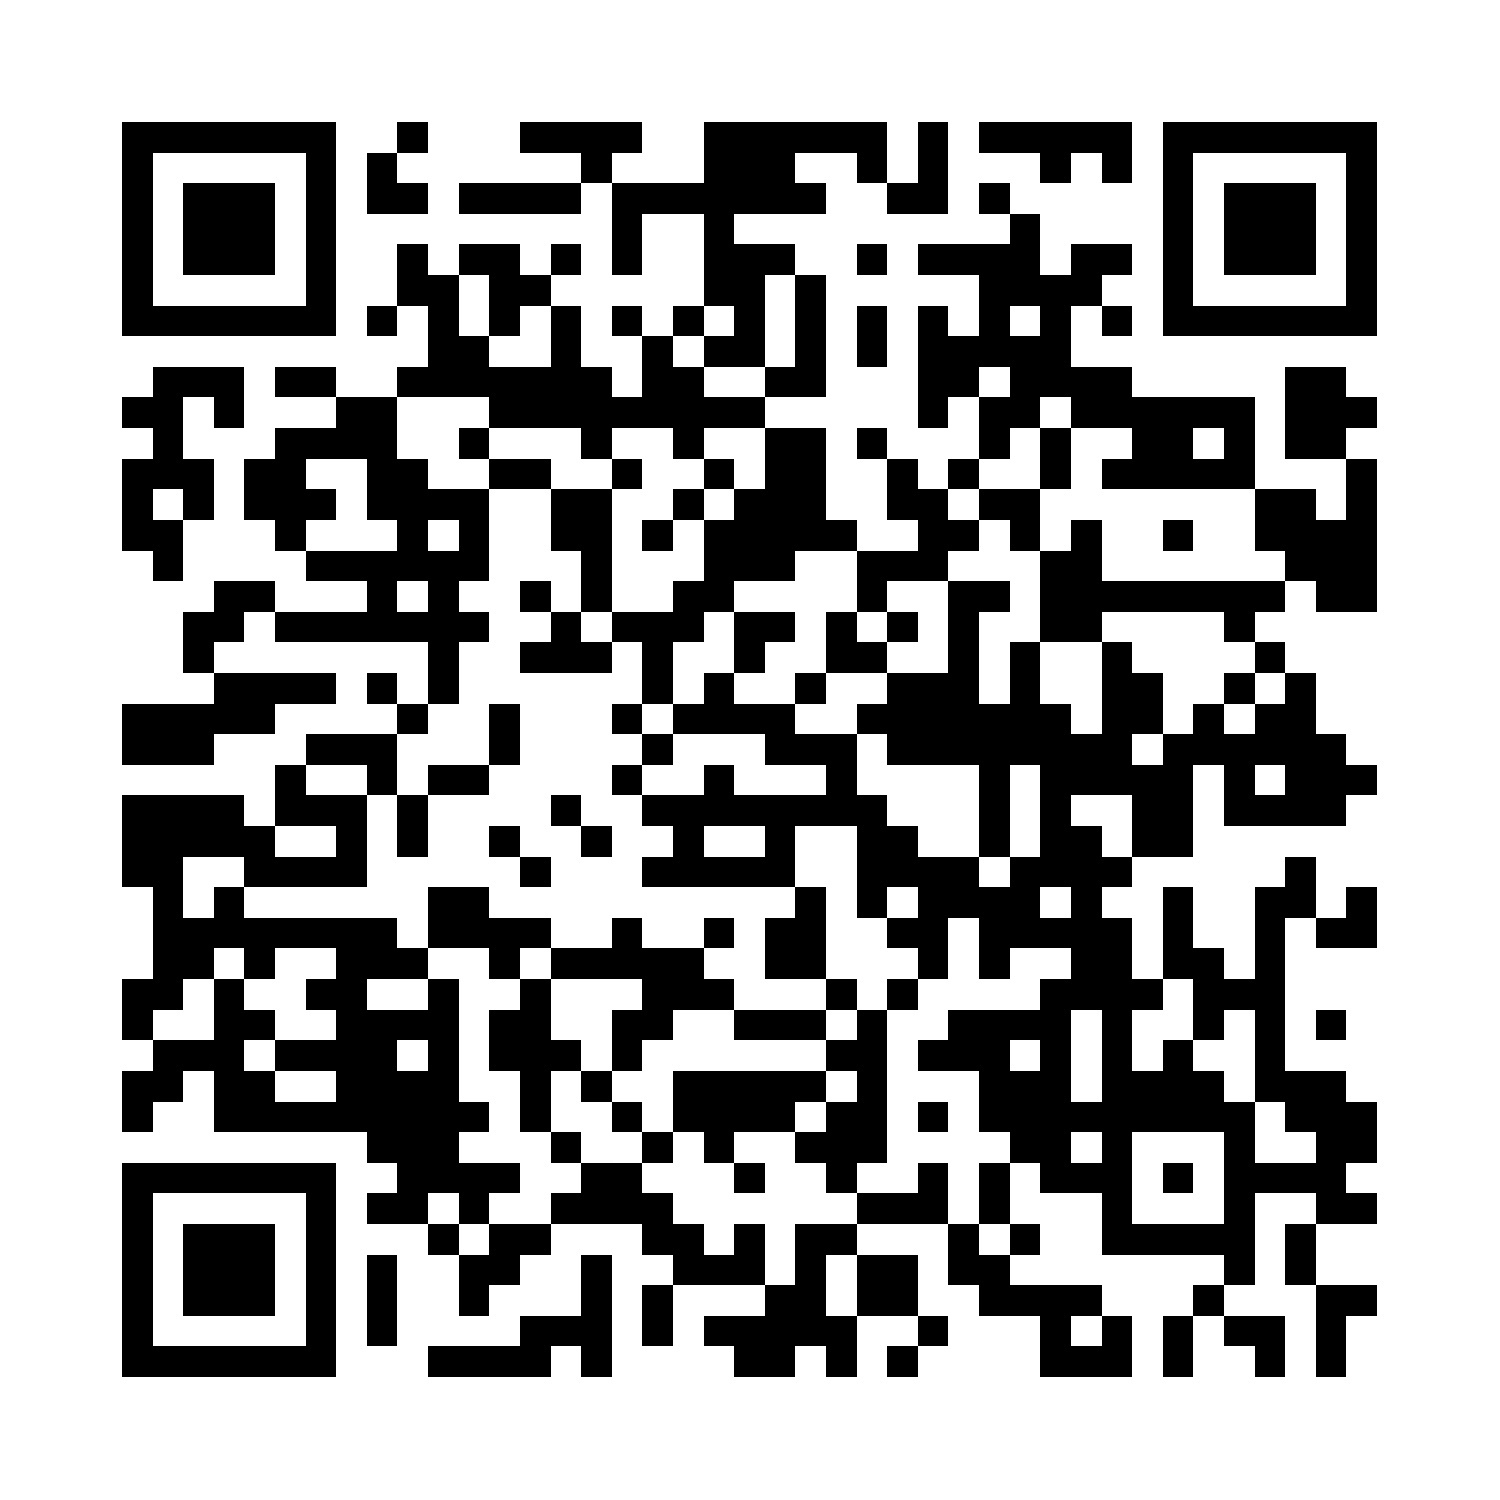 QRCode fortificazioni